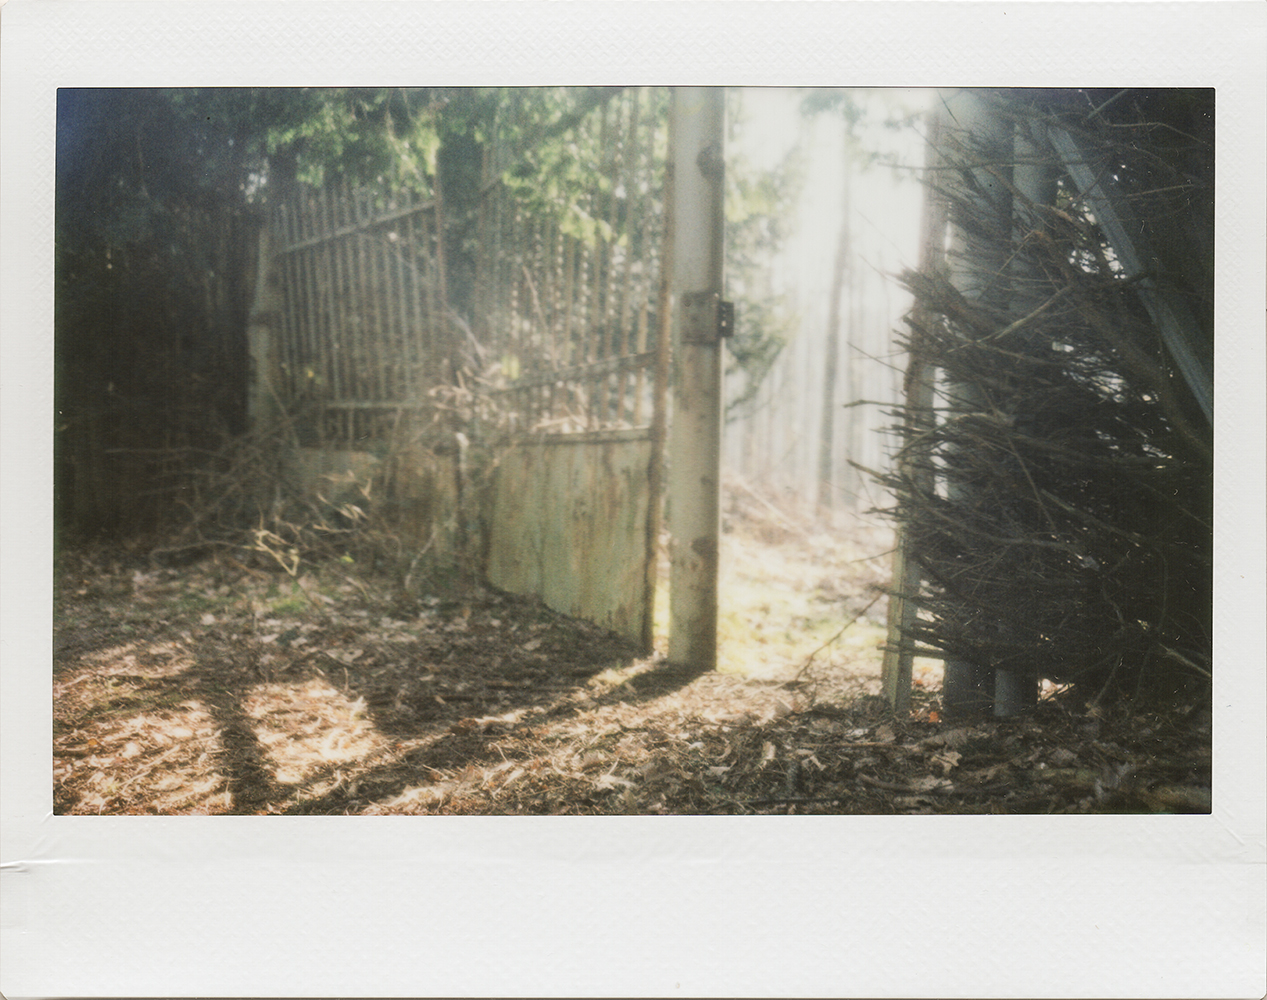 The Gate | Polaroid Automatic 250 | Fuji Instax Wide | Karin Claus